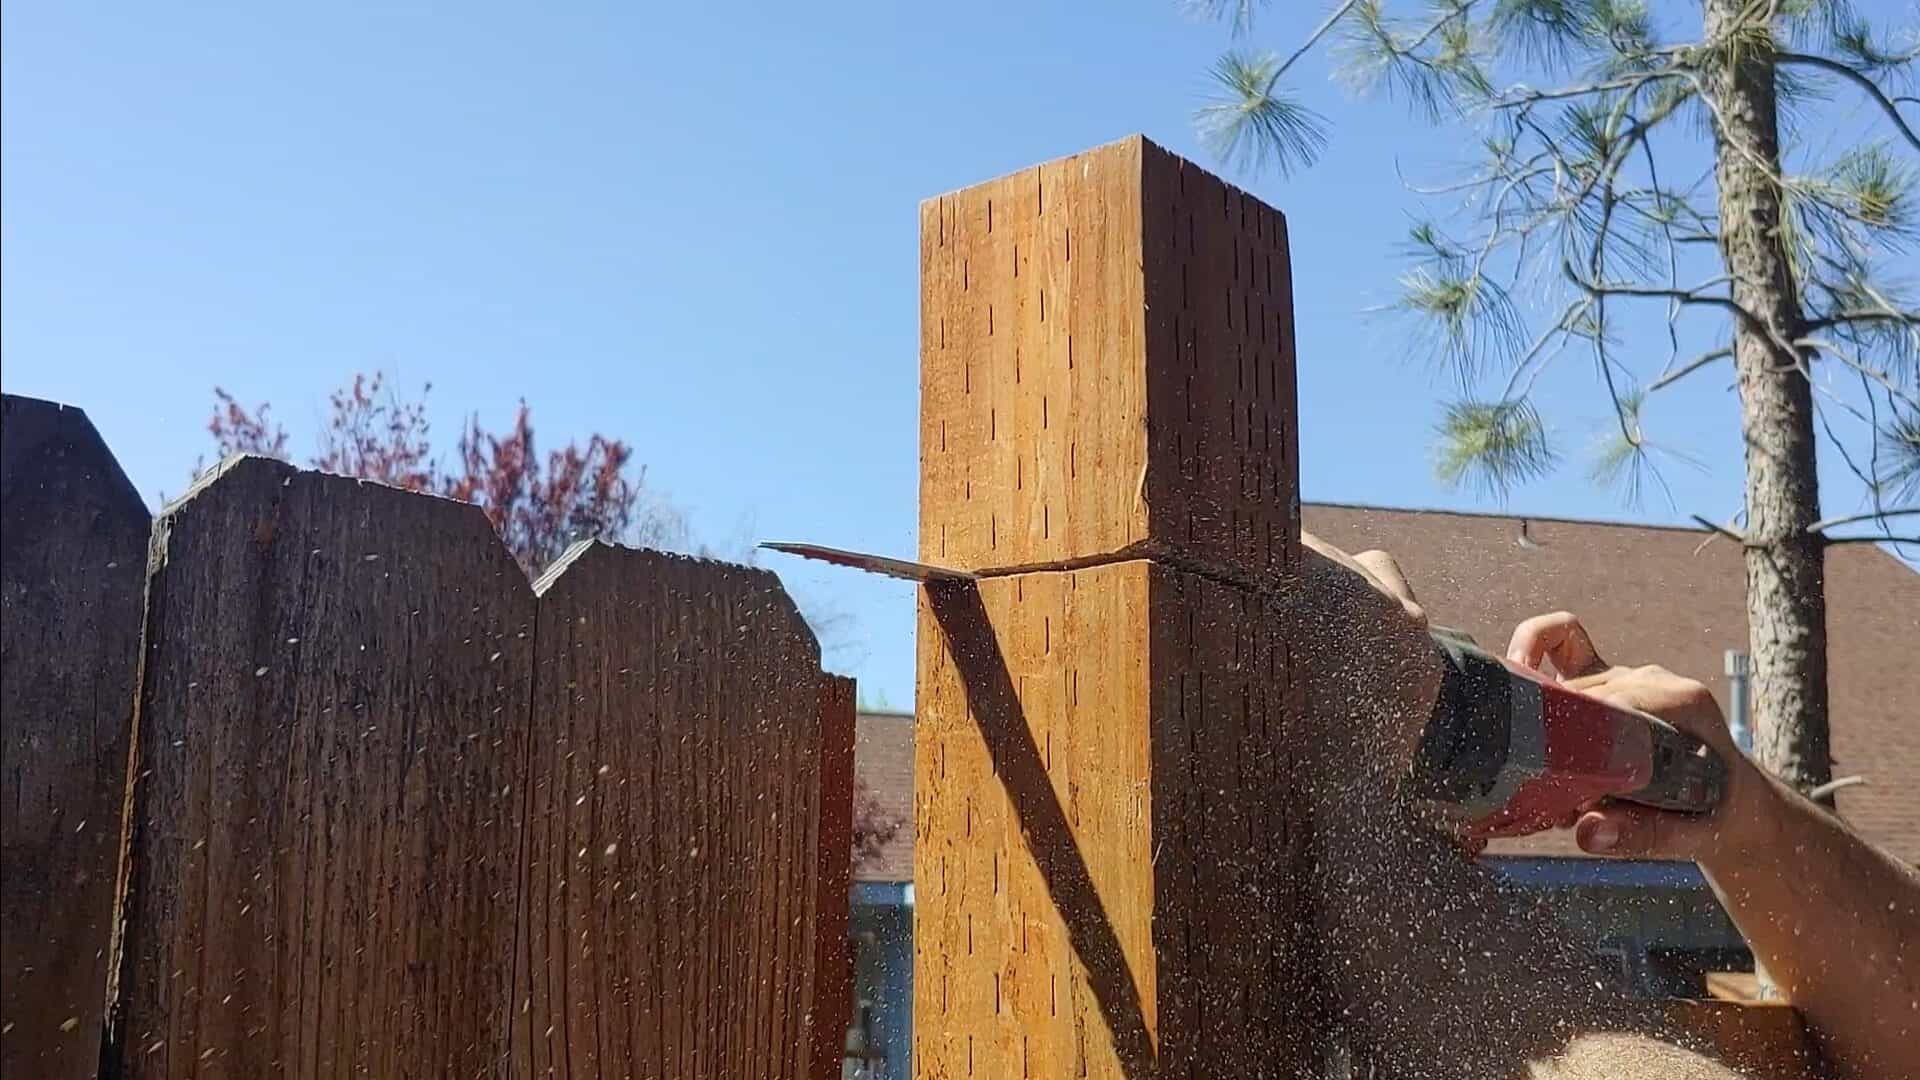 shows a reciprocating saw cutting the top of a fence post